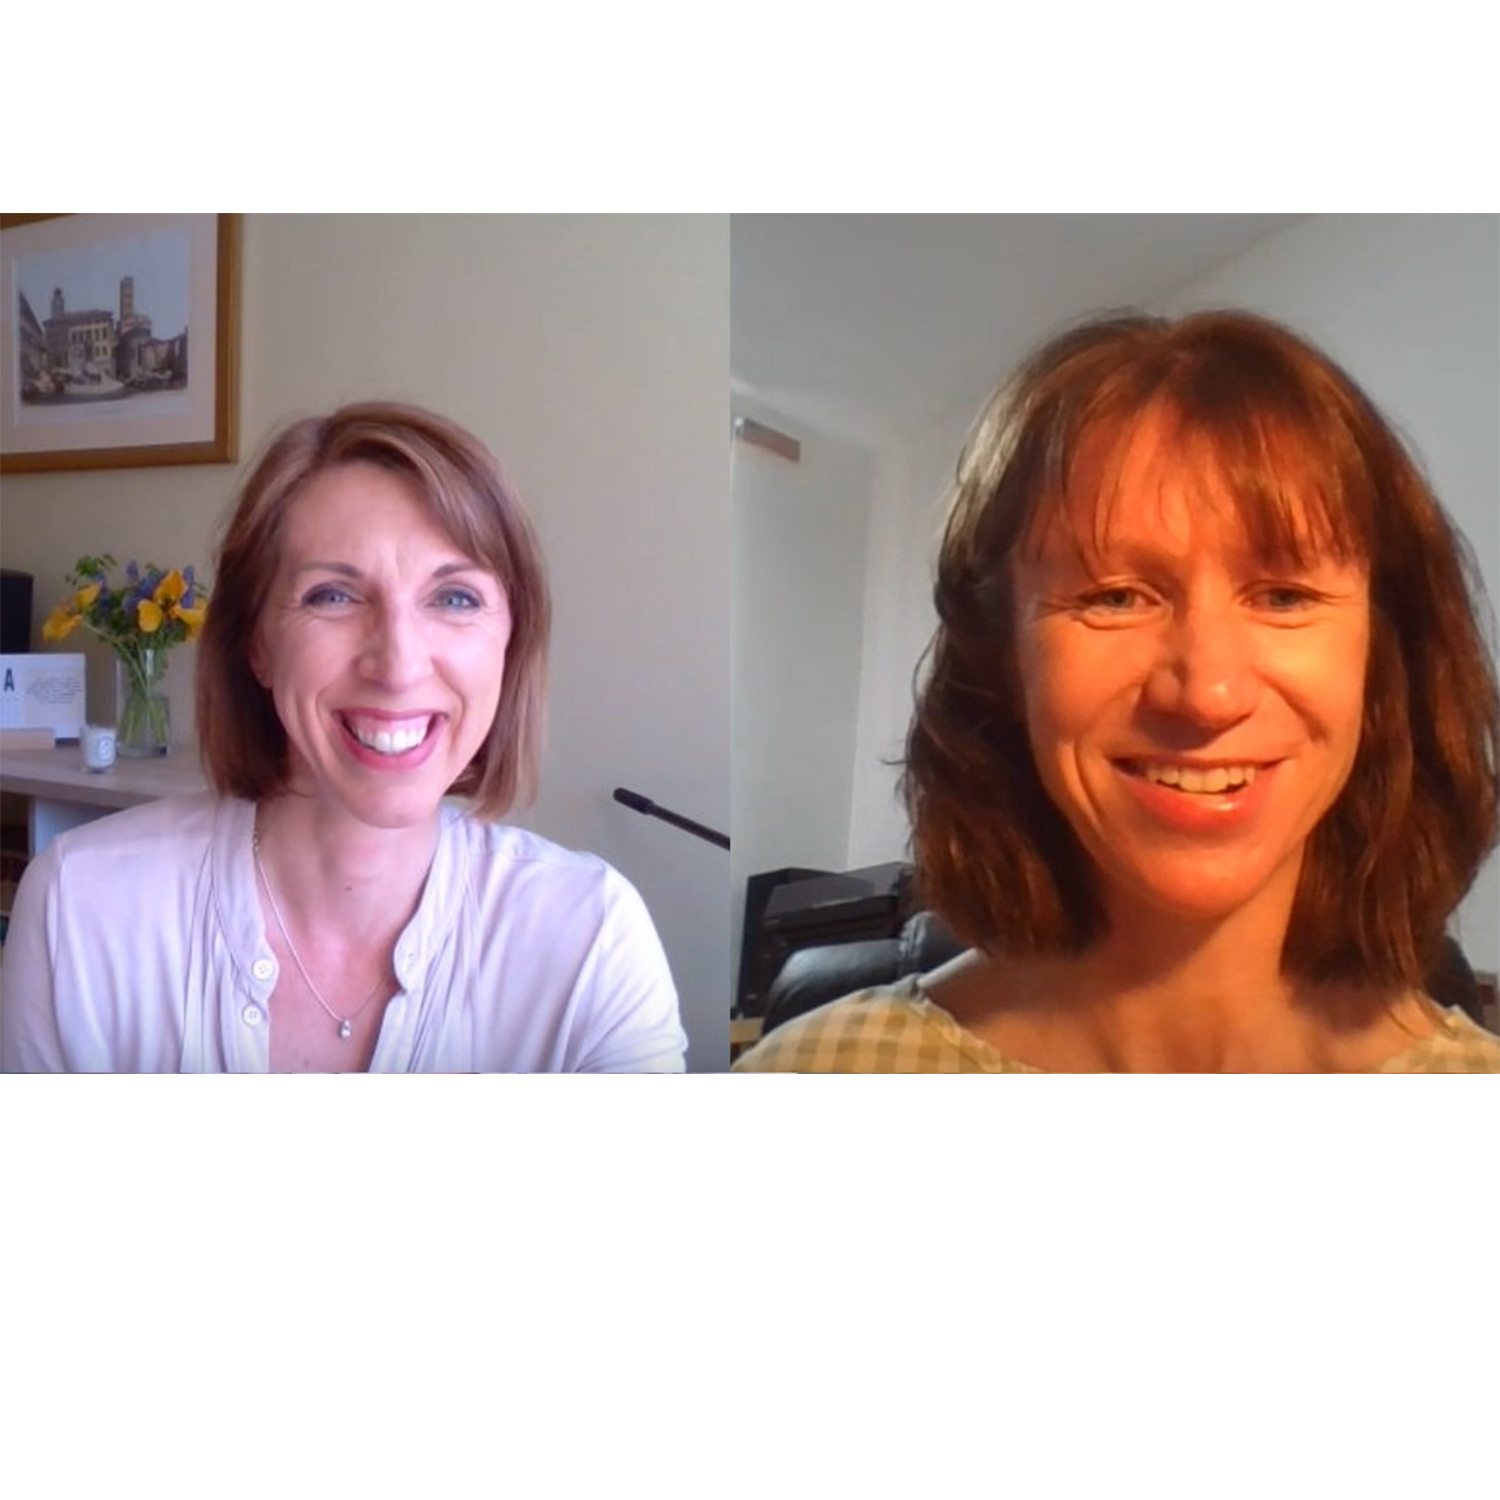 048 Newson Health in the North - Dr Zoe Hodson & Dr Louise Newson